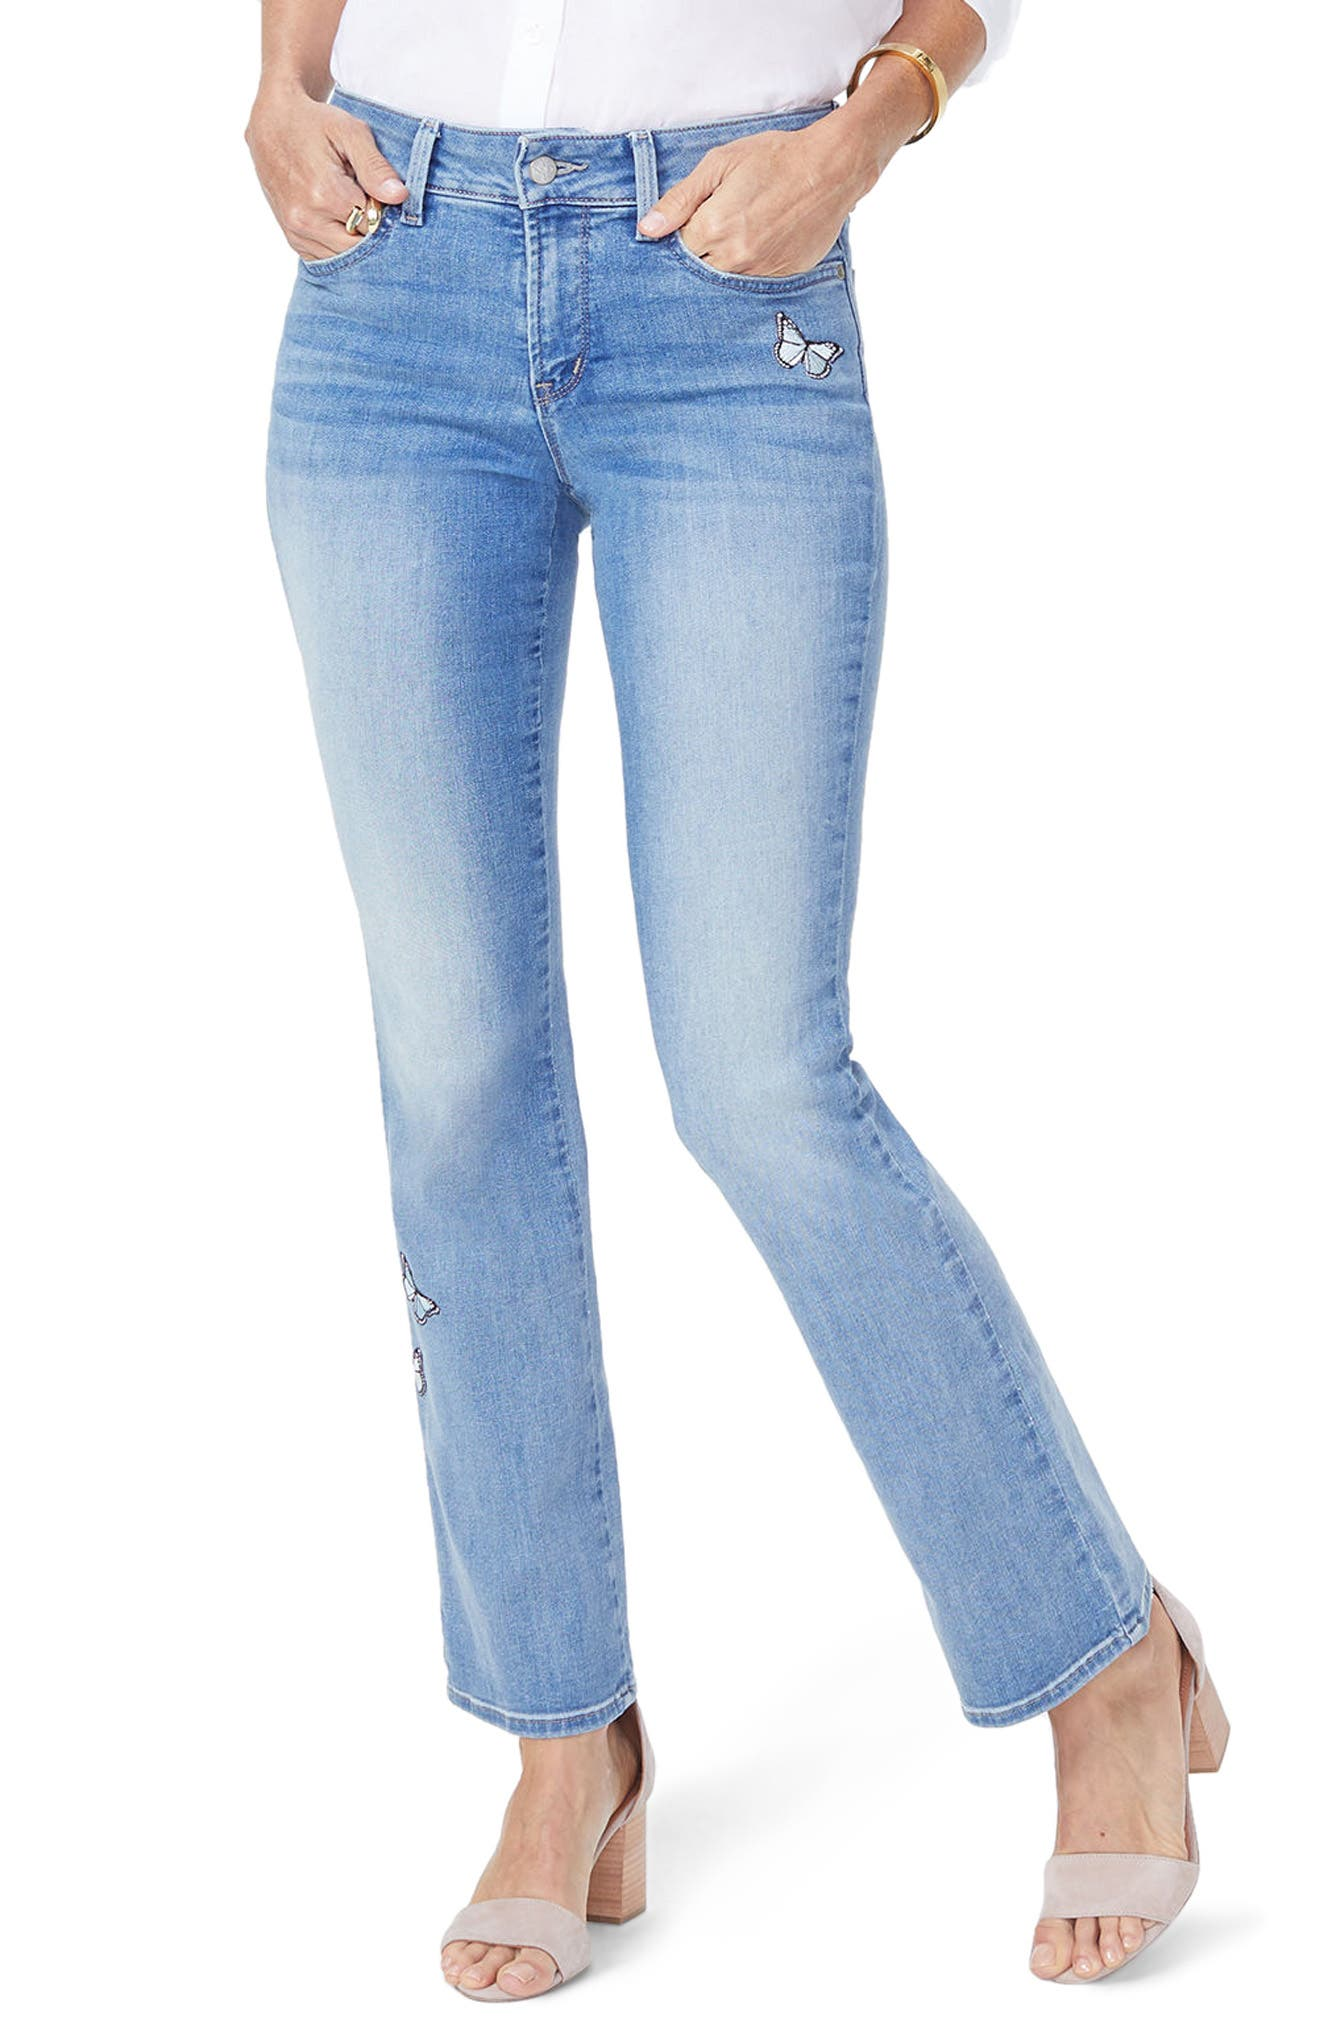 Barbara Butterfly Bootcut Jeans,                             Main thumbnail 1, color,                             418